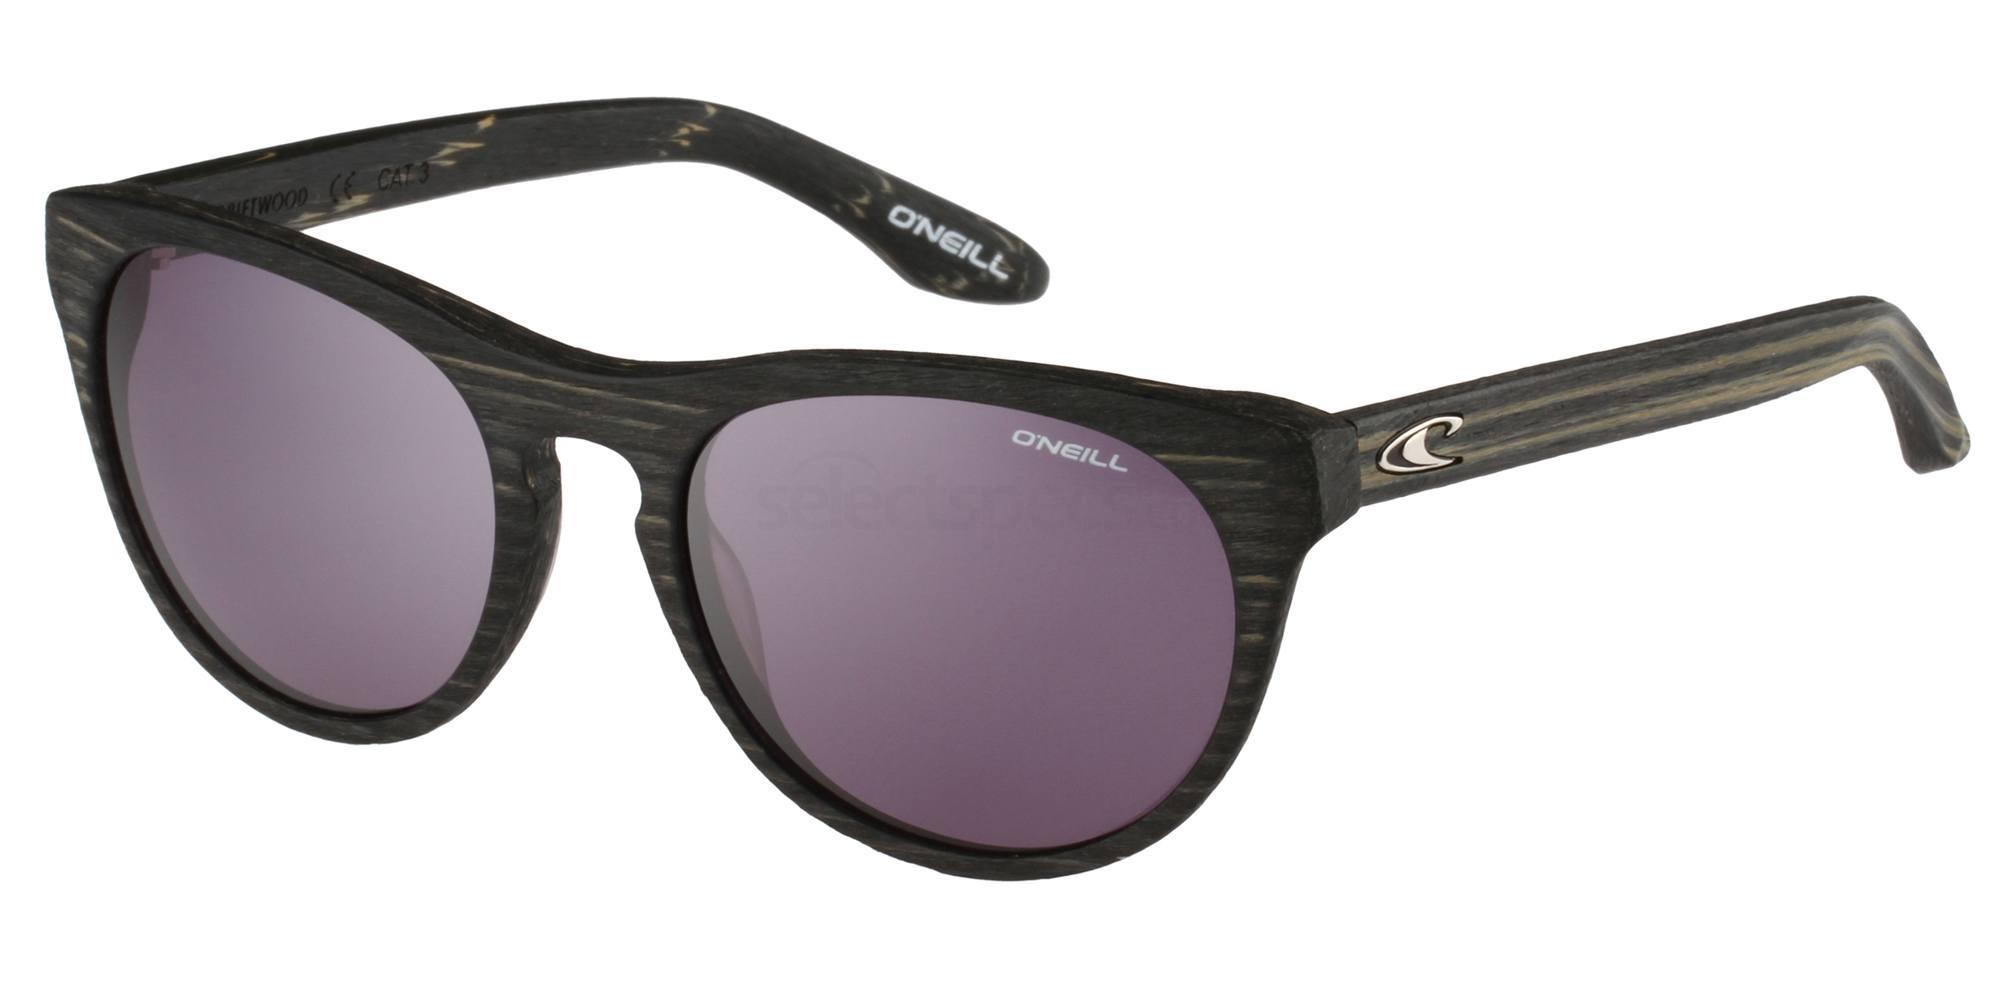 124 ONS-DRIFTWOOD-RX Sunglasses, O'Neill